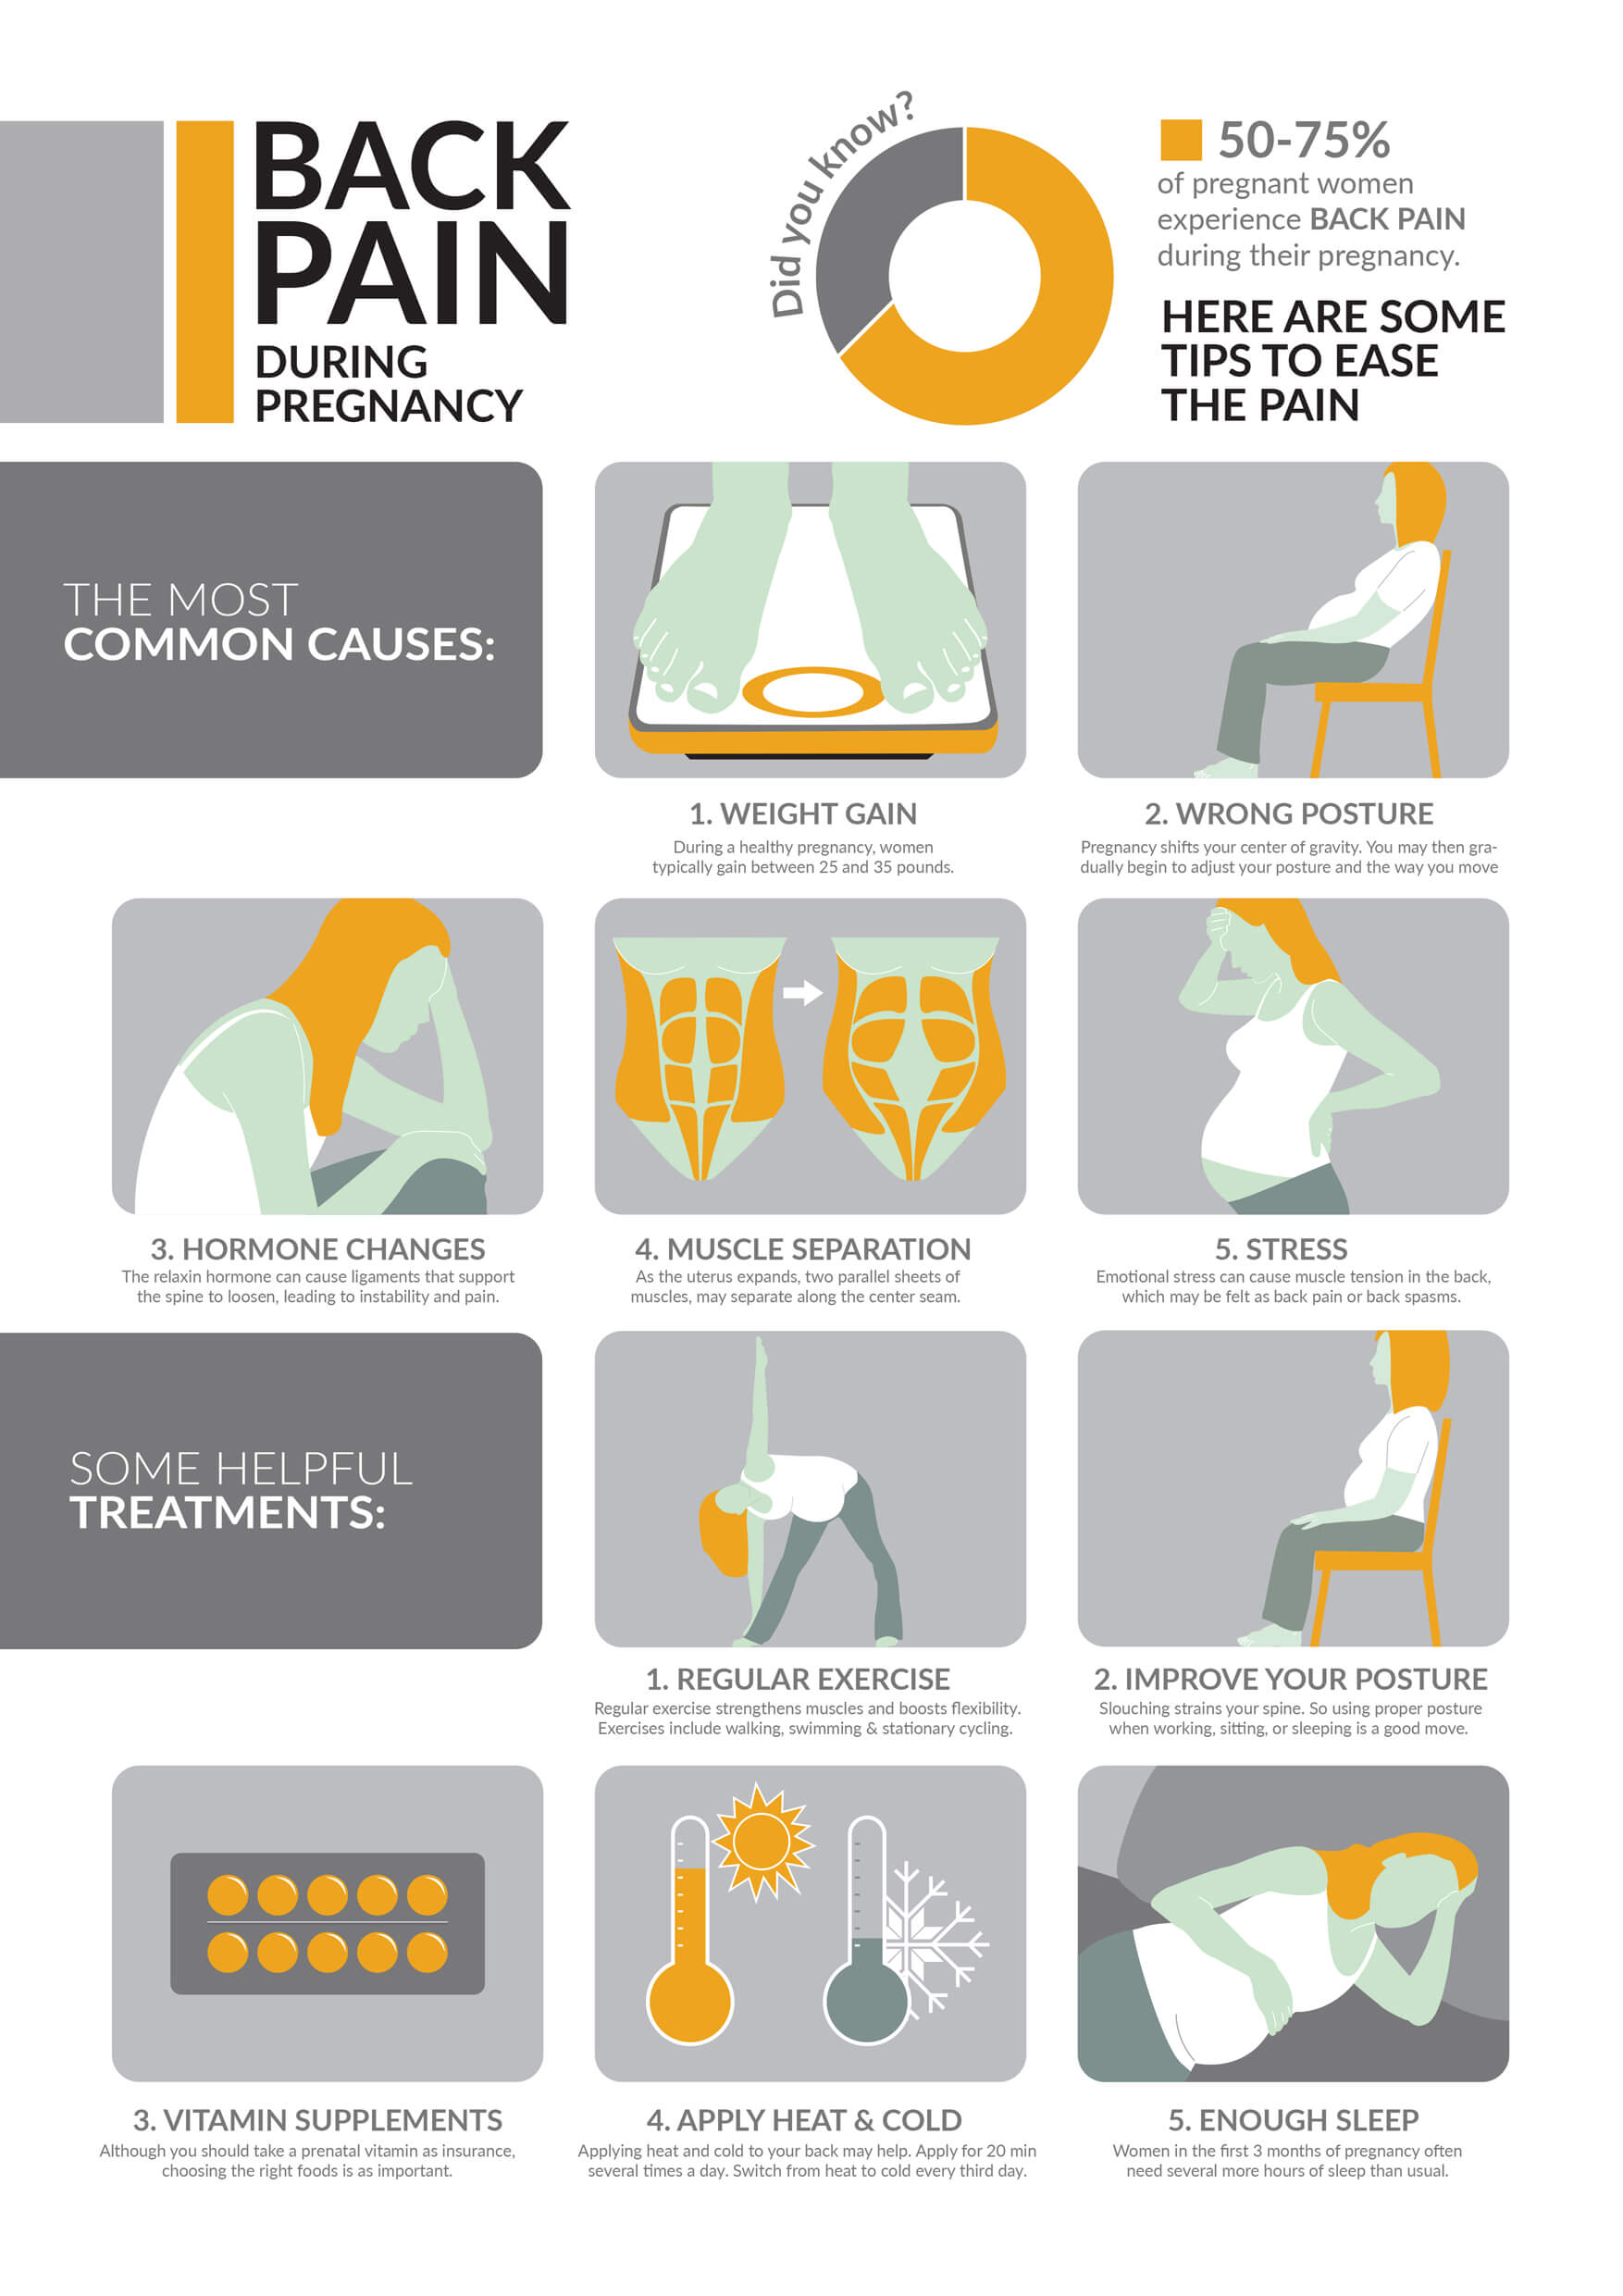 Pregnancy-Back-Pain-infographic-plaza